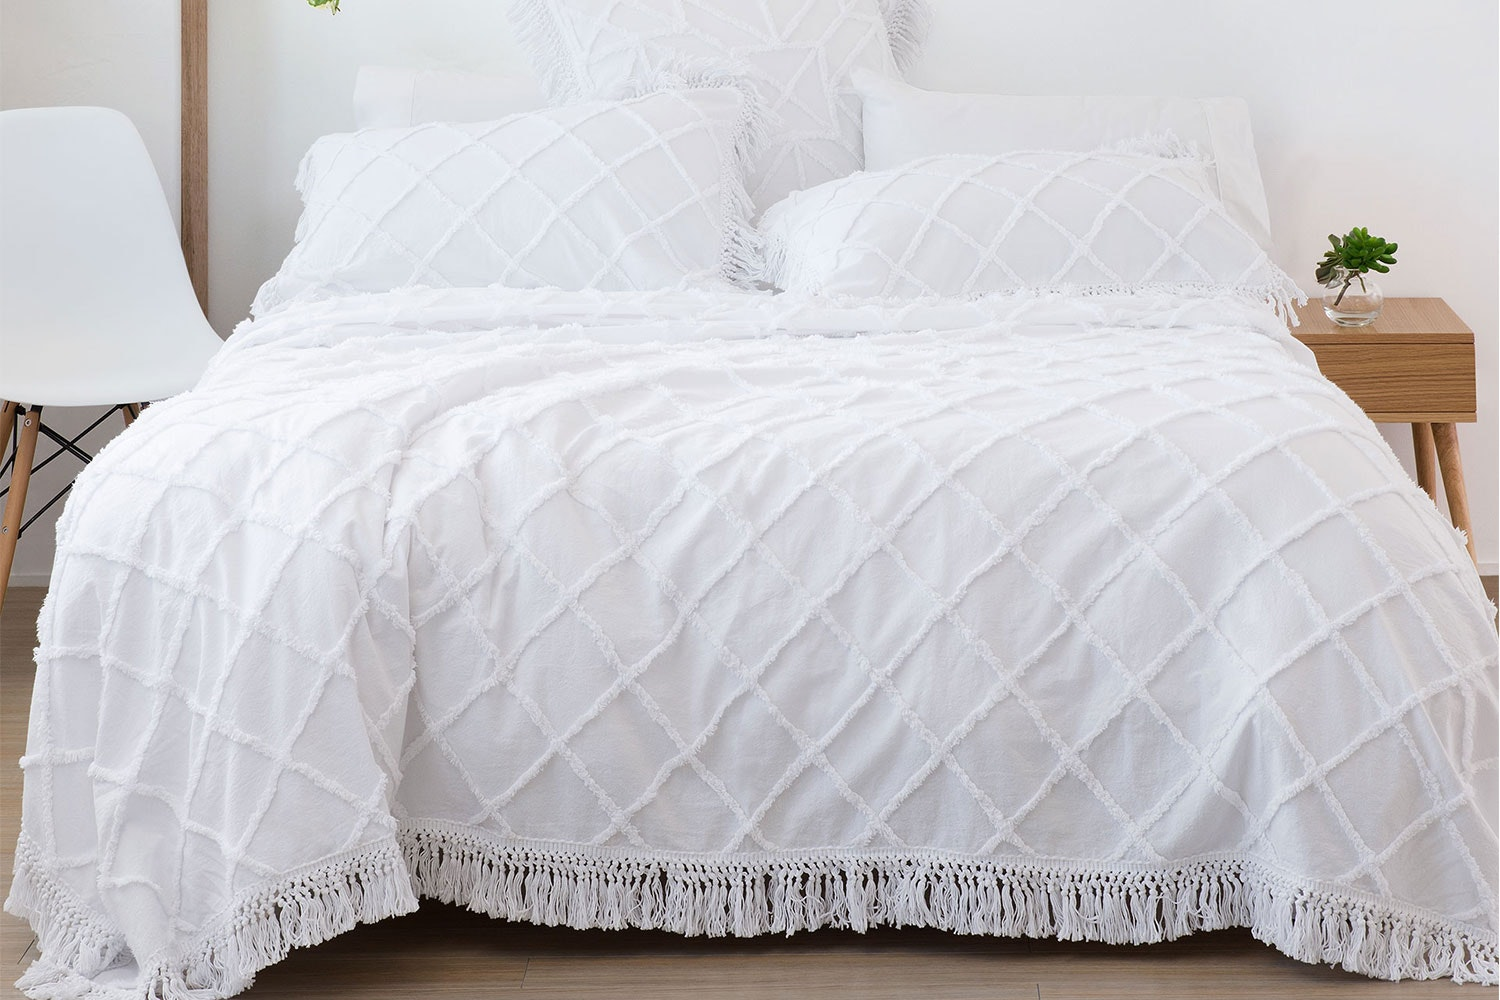 Lumiere Coverlet by Savona